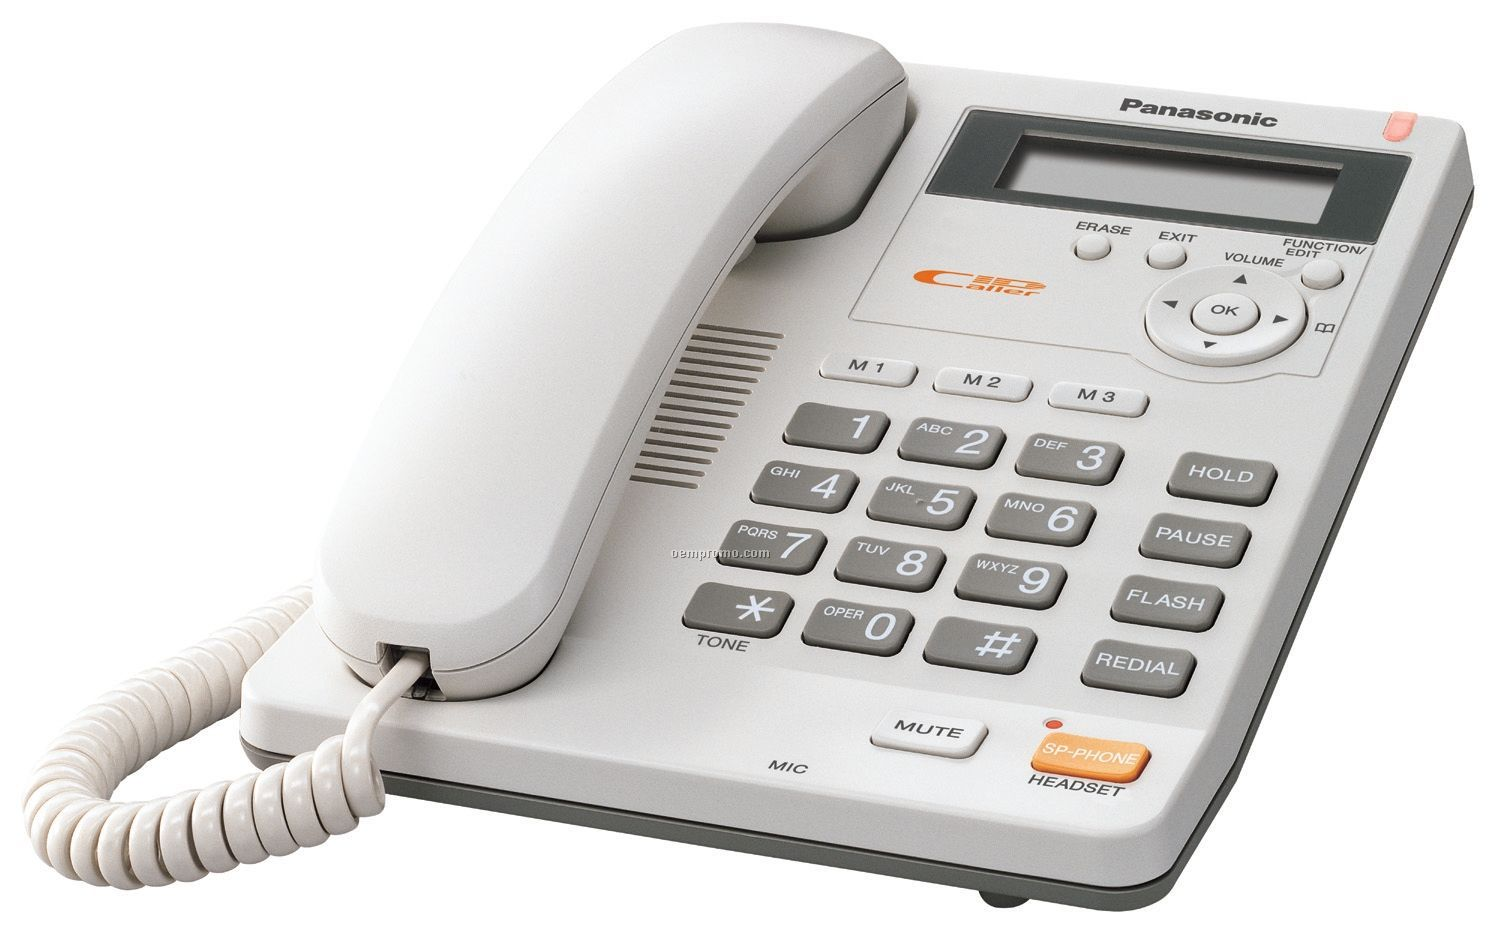 Panasonic phones panasonic phones with corded base for Home telecom